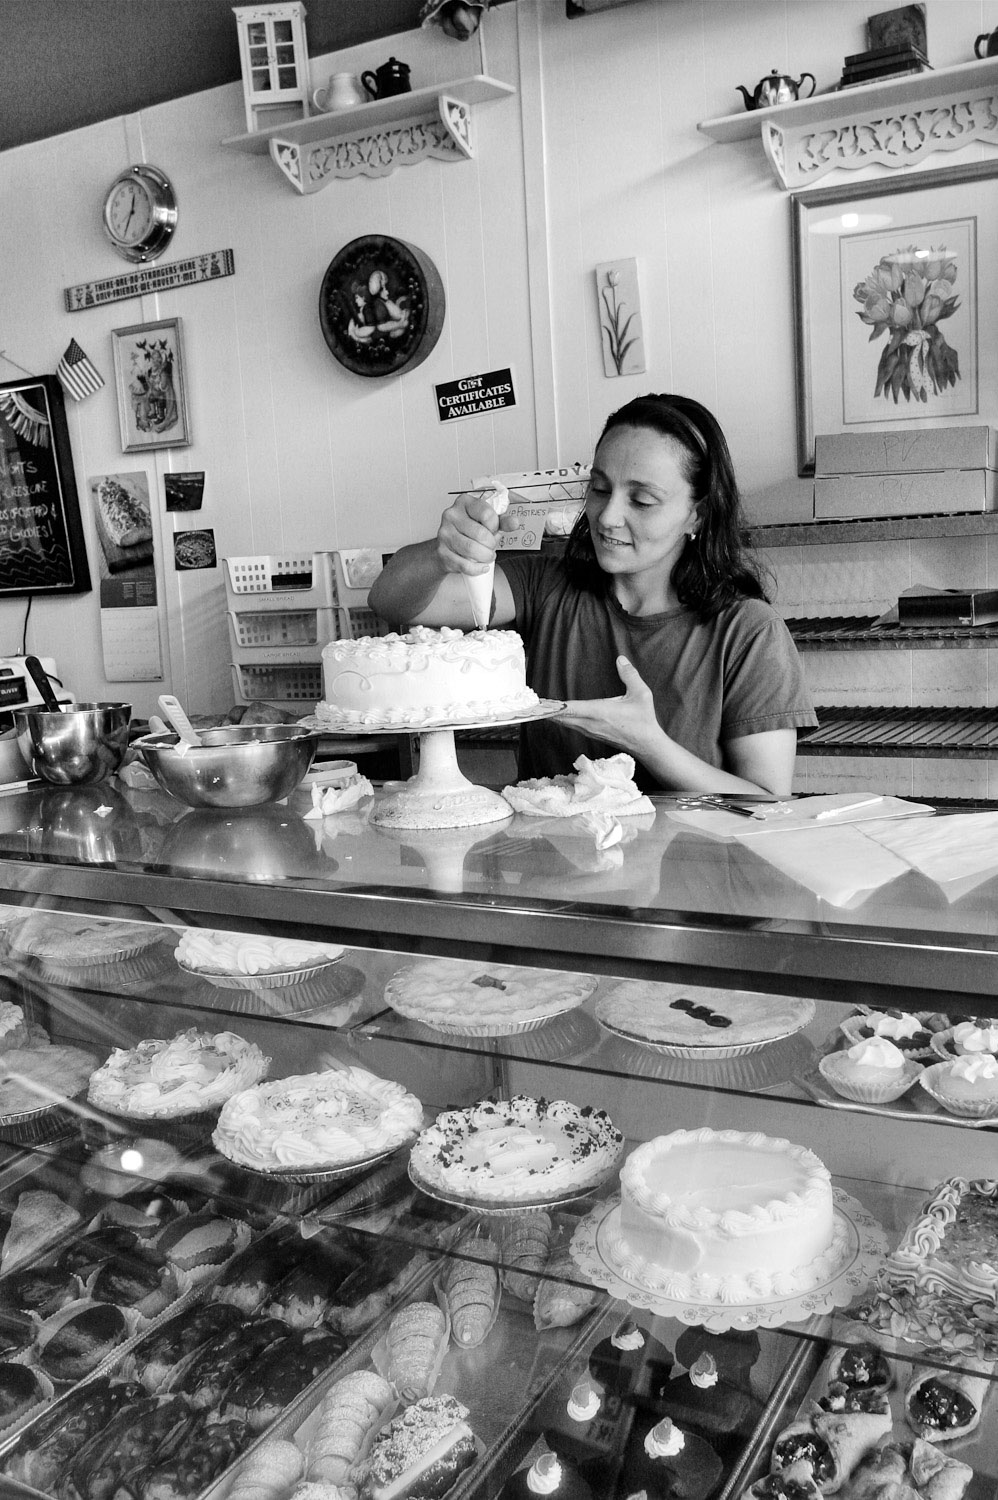 Tulip Pastry Shop employee decorates a cake in St. Johns